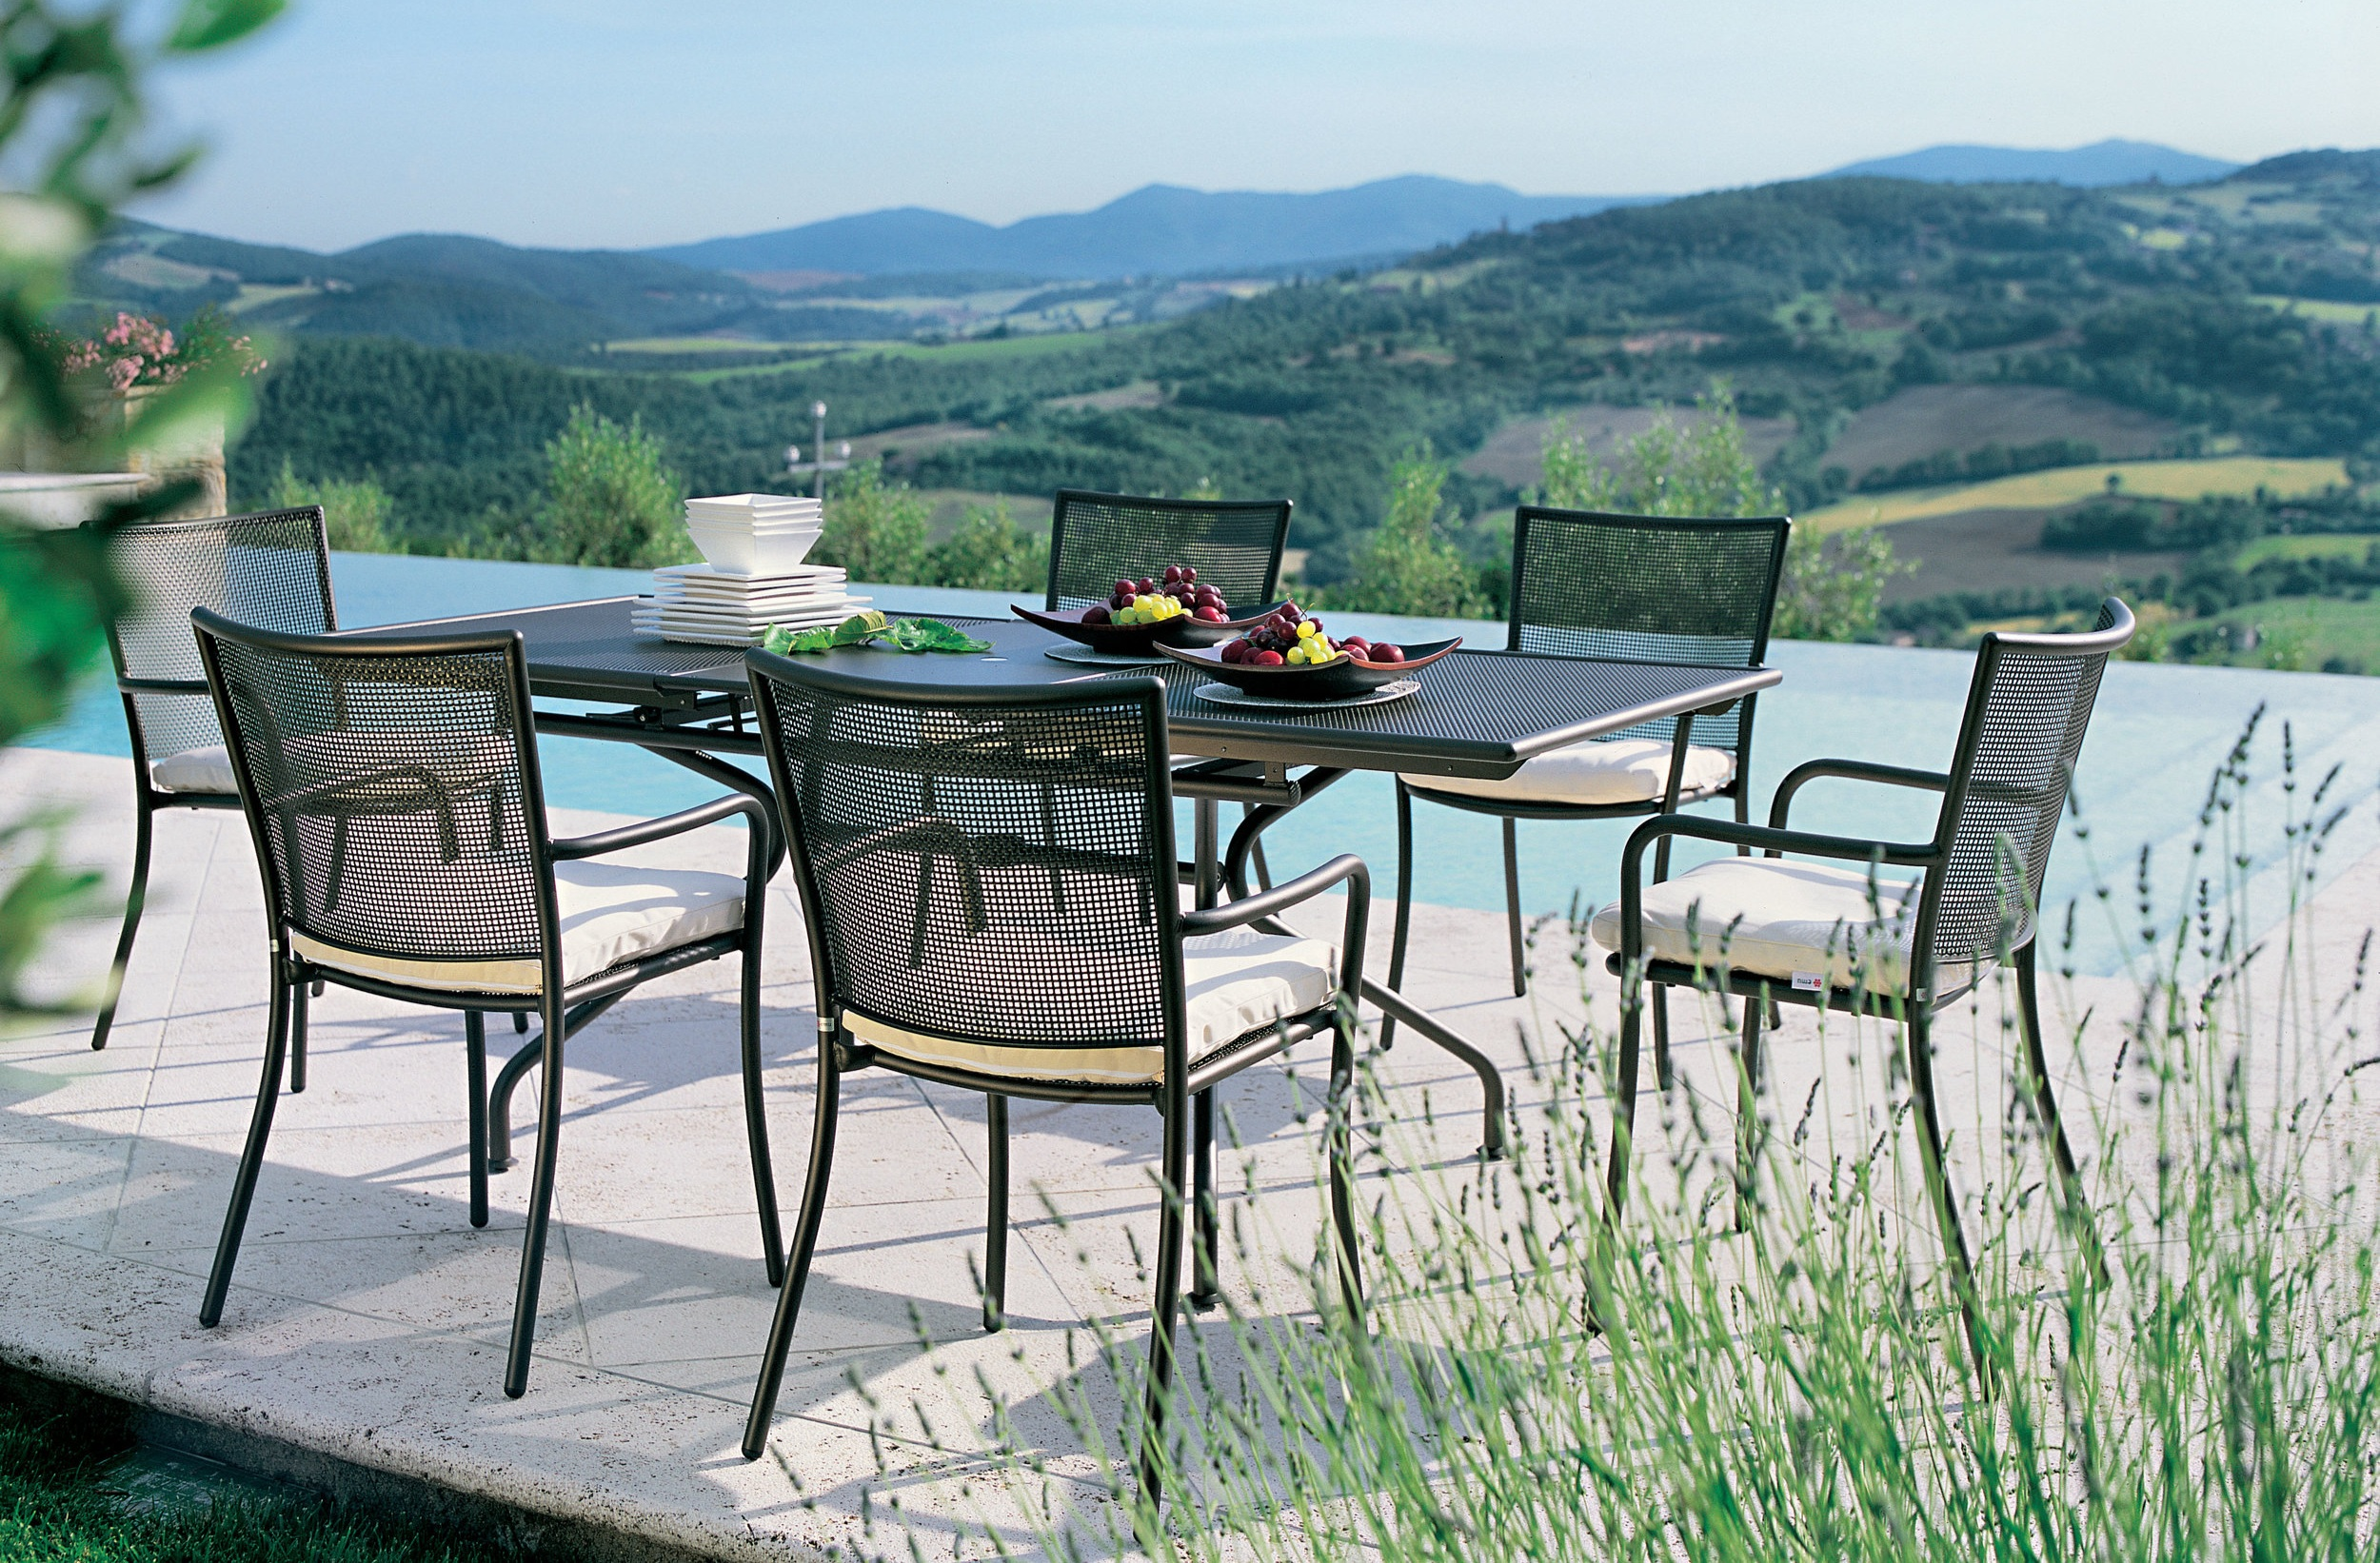 Athena Rectangular Table - The Athena table creates a perfect union with the sessions of the same series. The plan repeats the ornamental motif of the interwoven sheet metal typical of the armchairs of the family and is designed to provide a perfect service functionality and practically for hours of outdoor relaxation.